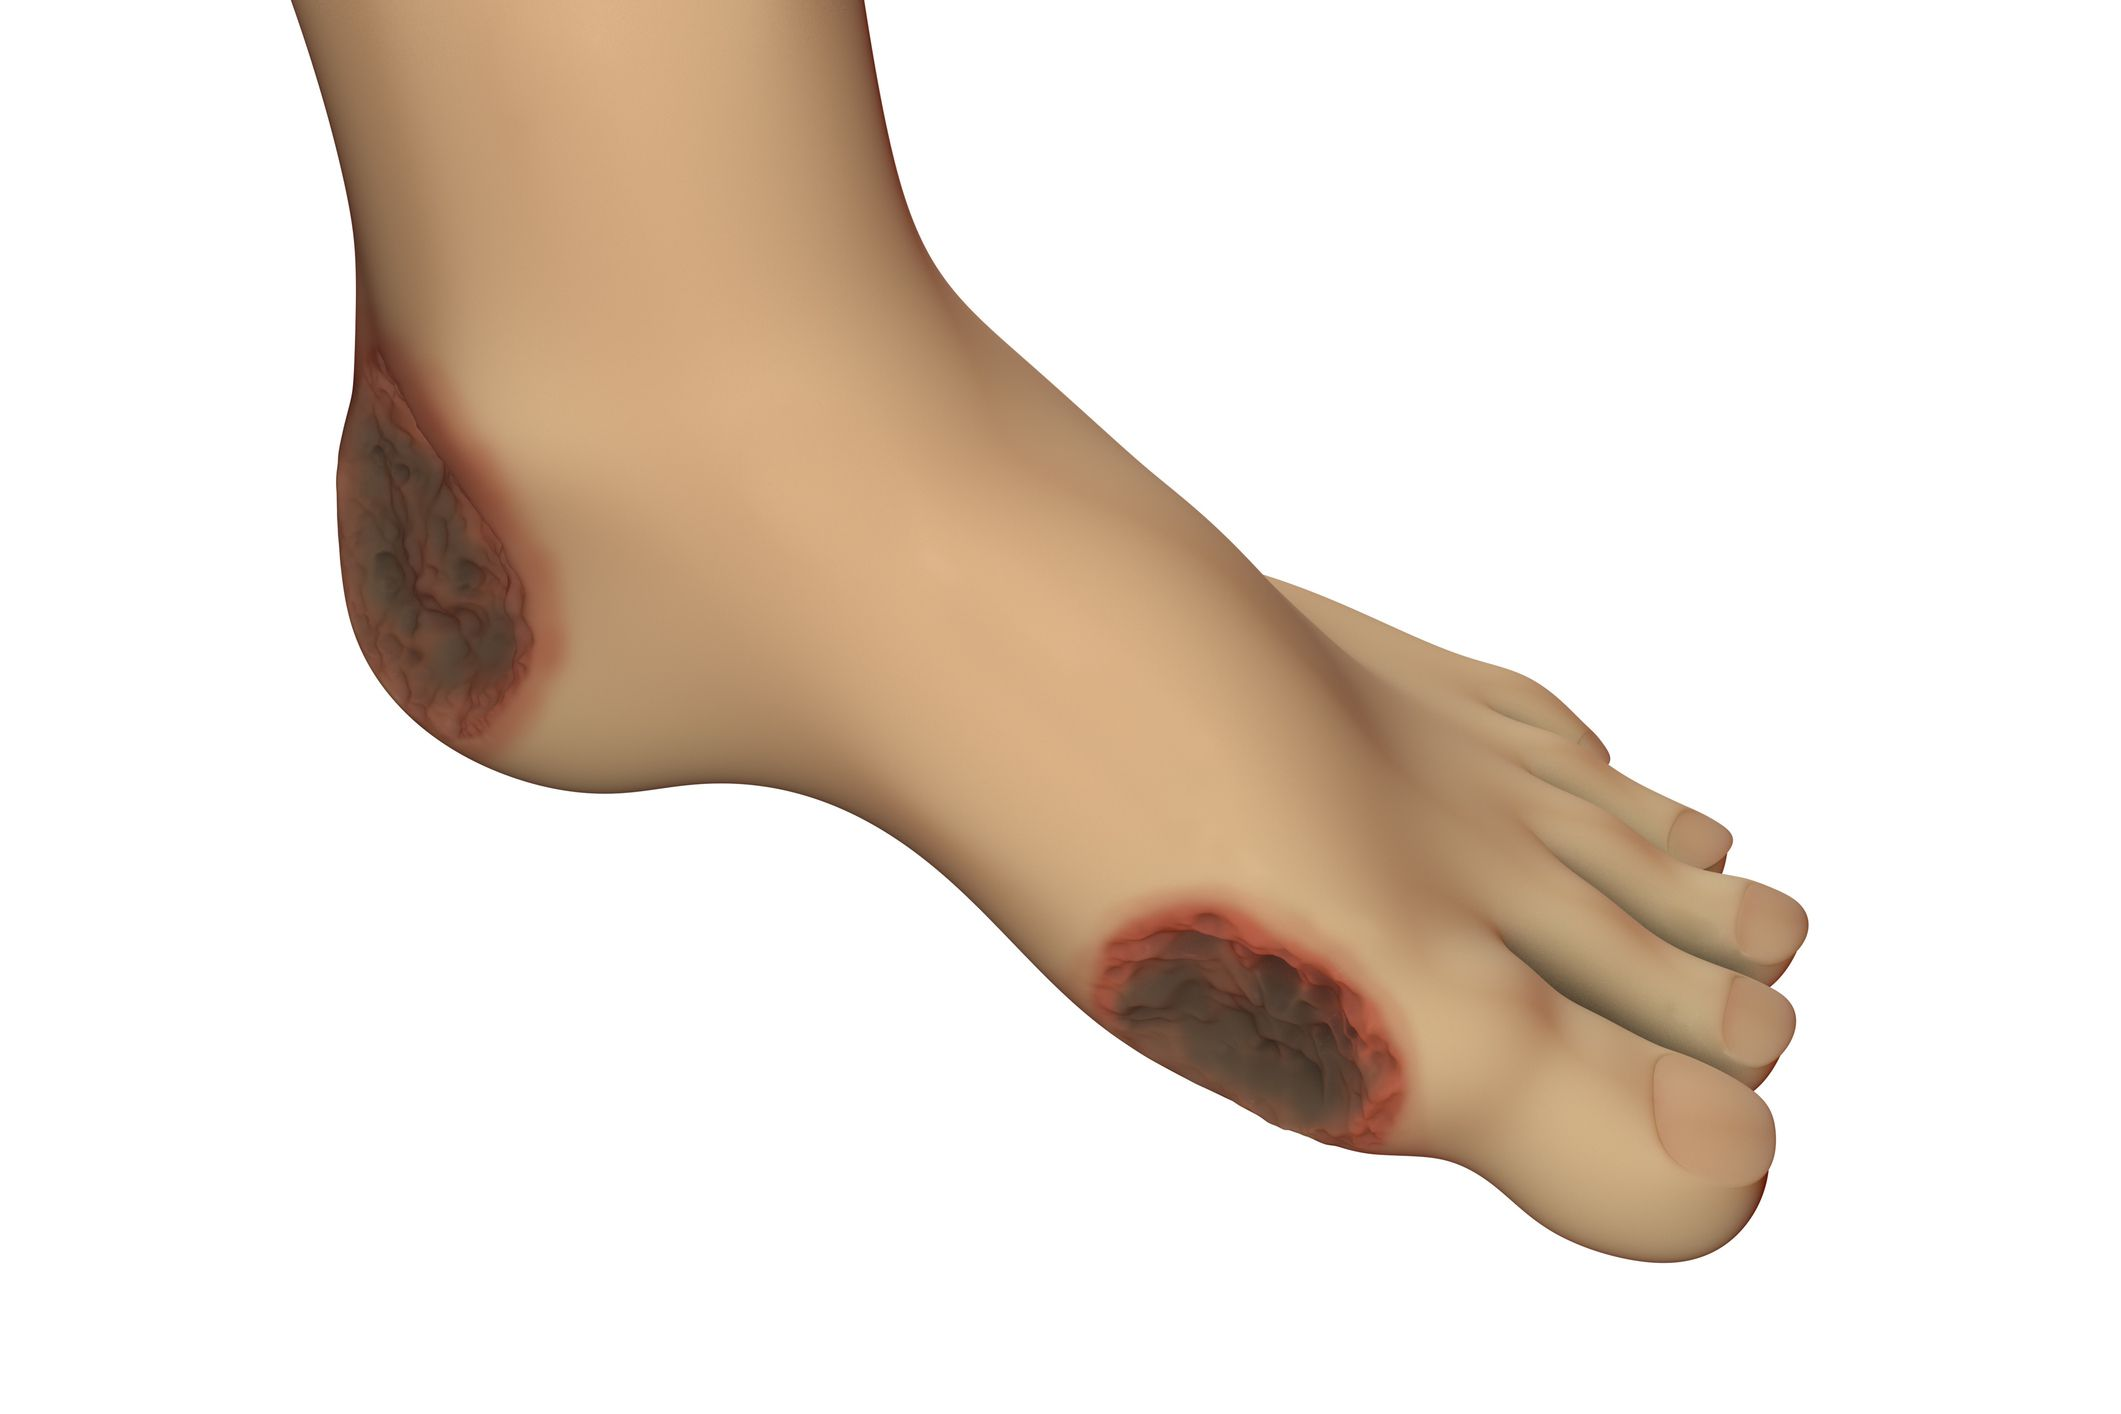 Skin Ulcers: Symptoms, Causes, Diagnosis, and Treatment